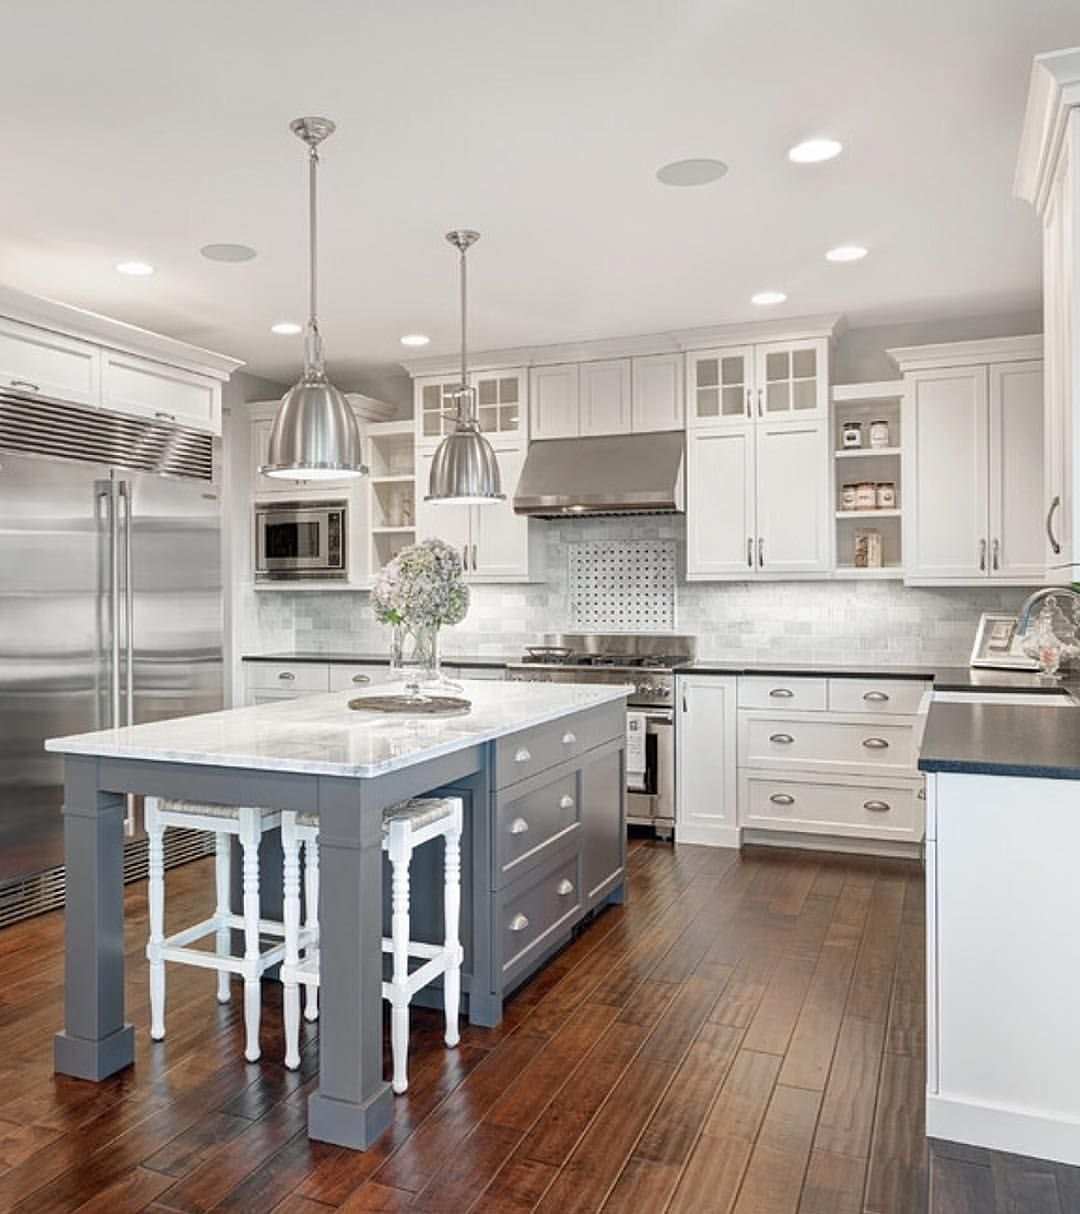 Model Home White Kitchen white & marble kitchen with grey island | house & home | pinterest